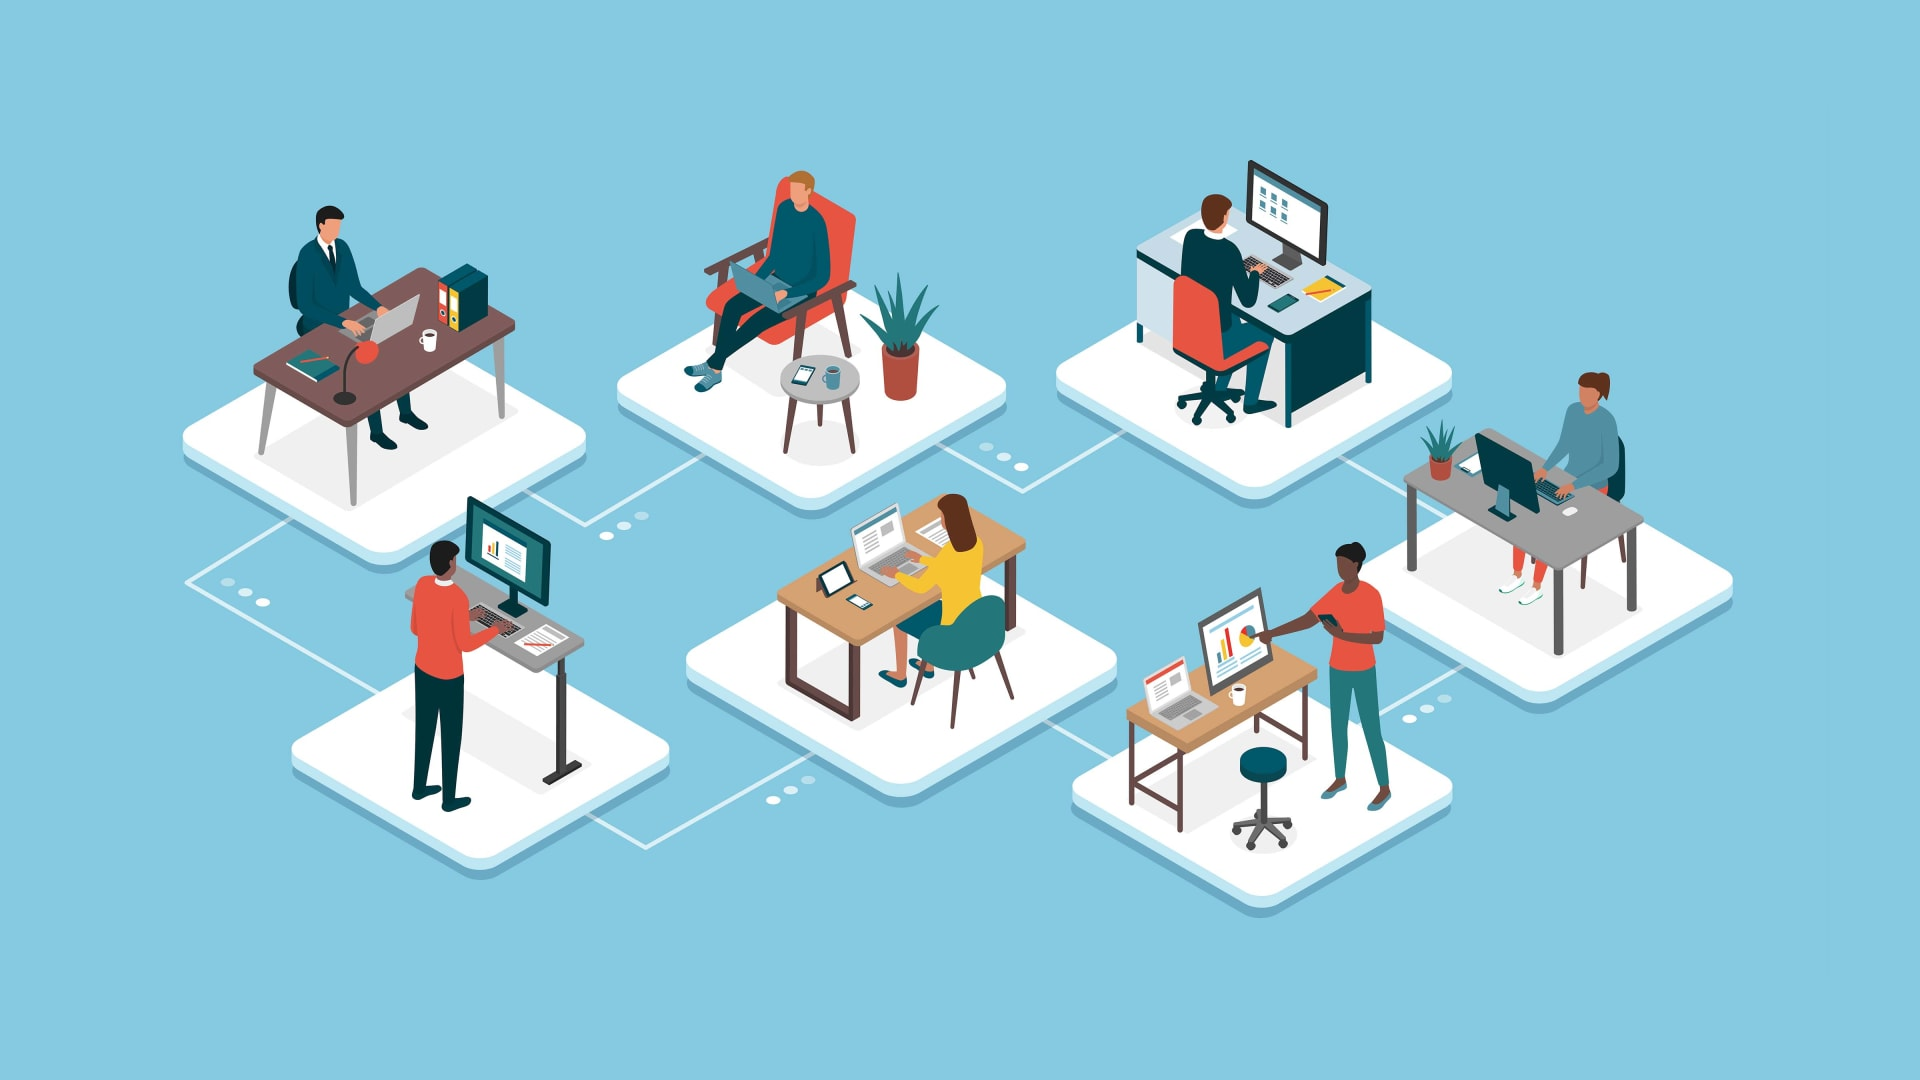 Does Remote Work Really Work? 4 CEOs on the Future of Their Workplaces